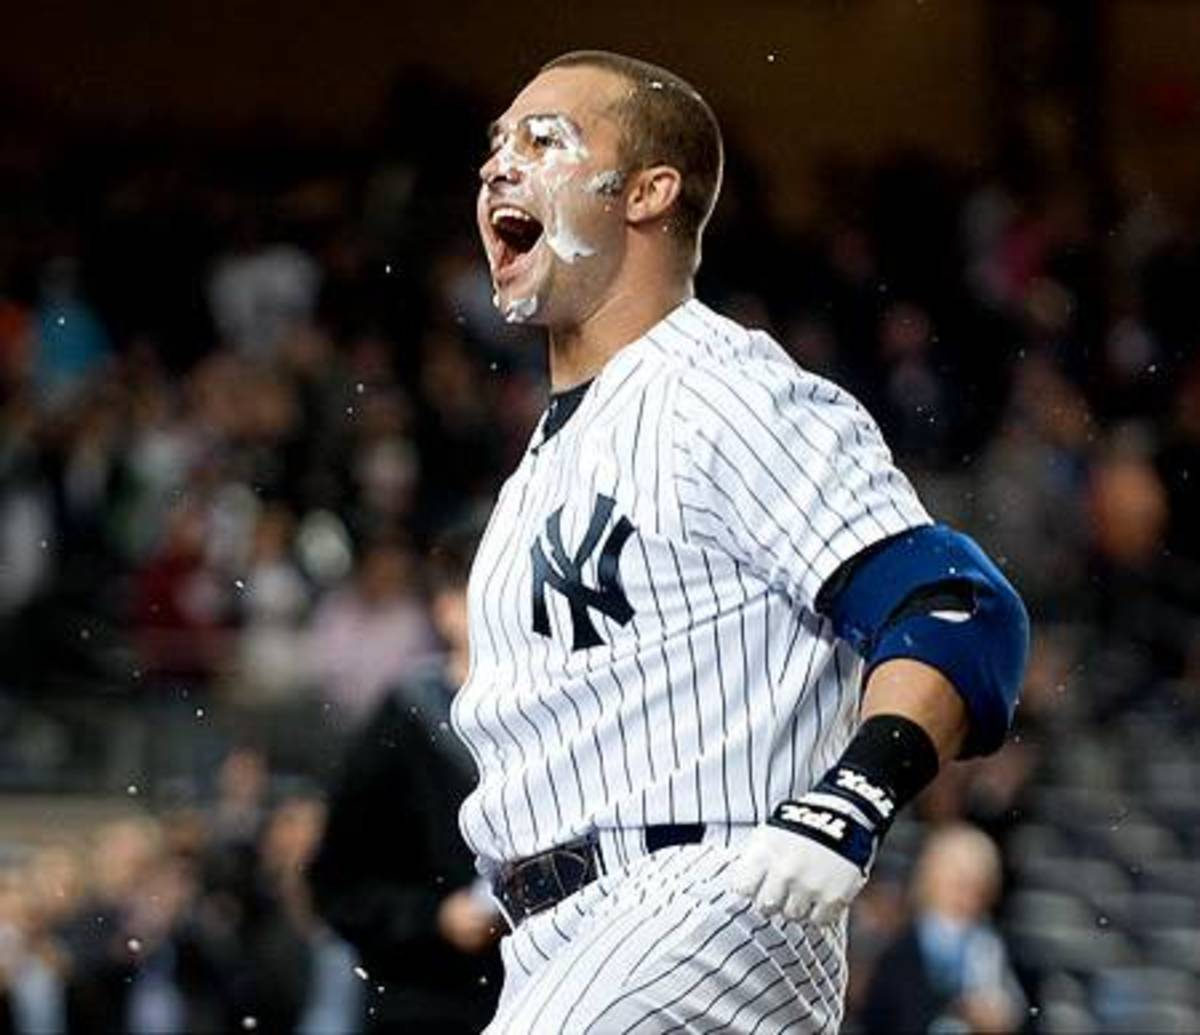 On April 14, 2011, Yankees Nick Swisher delivered the game-winner with a sacrifice fly in the 10th, stunning the Orioles with a dramatic 6-5 win.  He got a celebratory pie in the face.